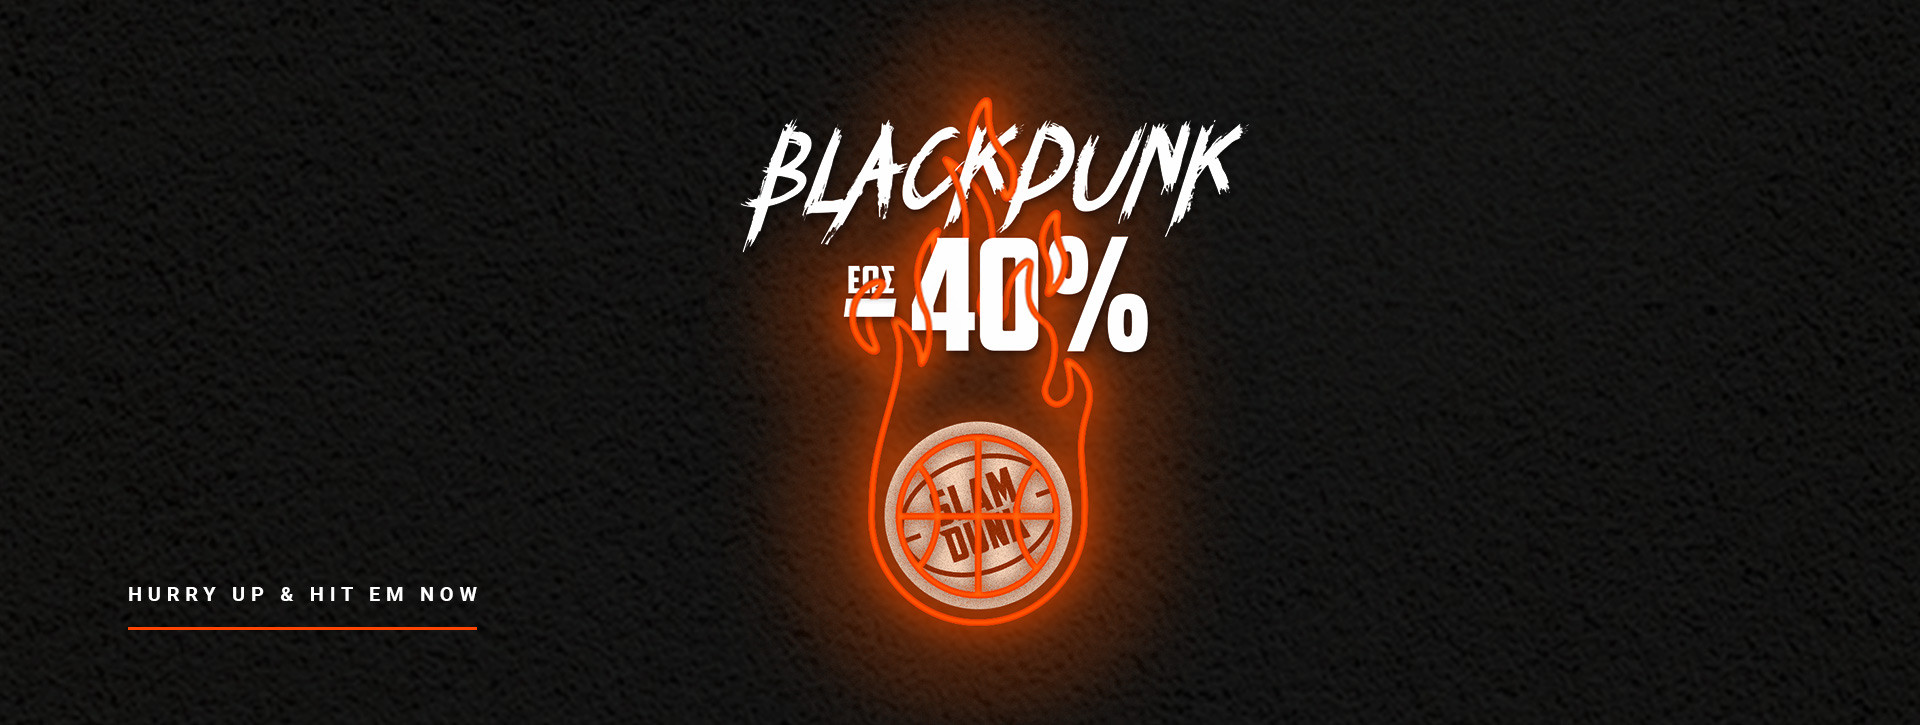 Black Friday up to -40%